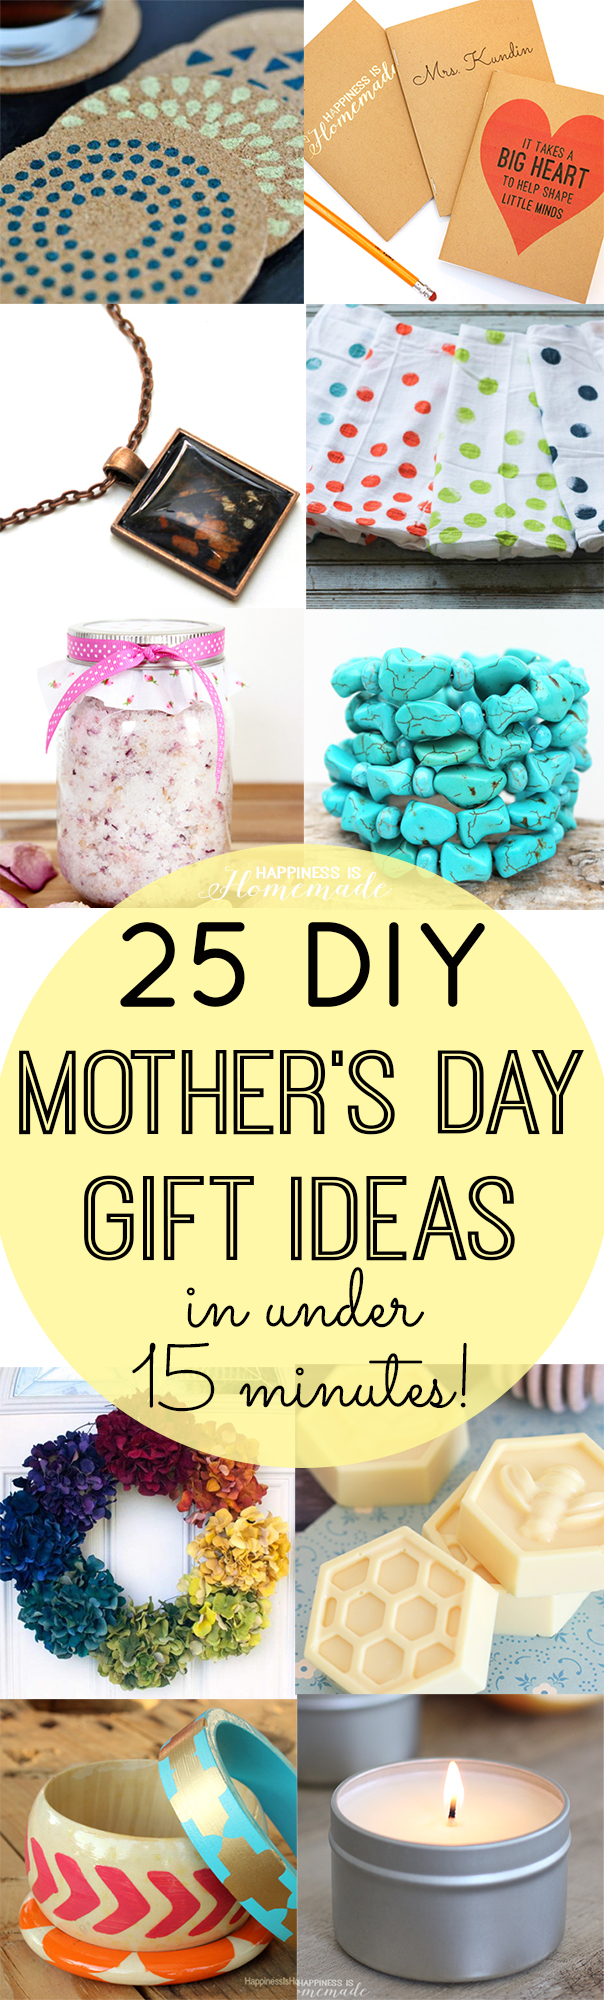 Mother's Day Gift Ideas that can be made in 15 minutes or less!